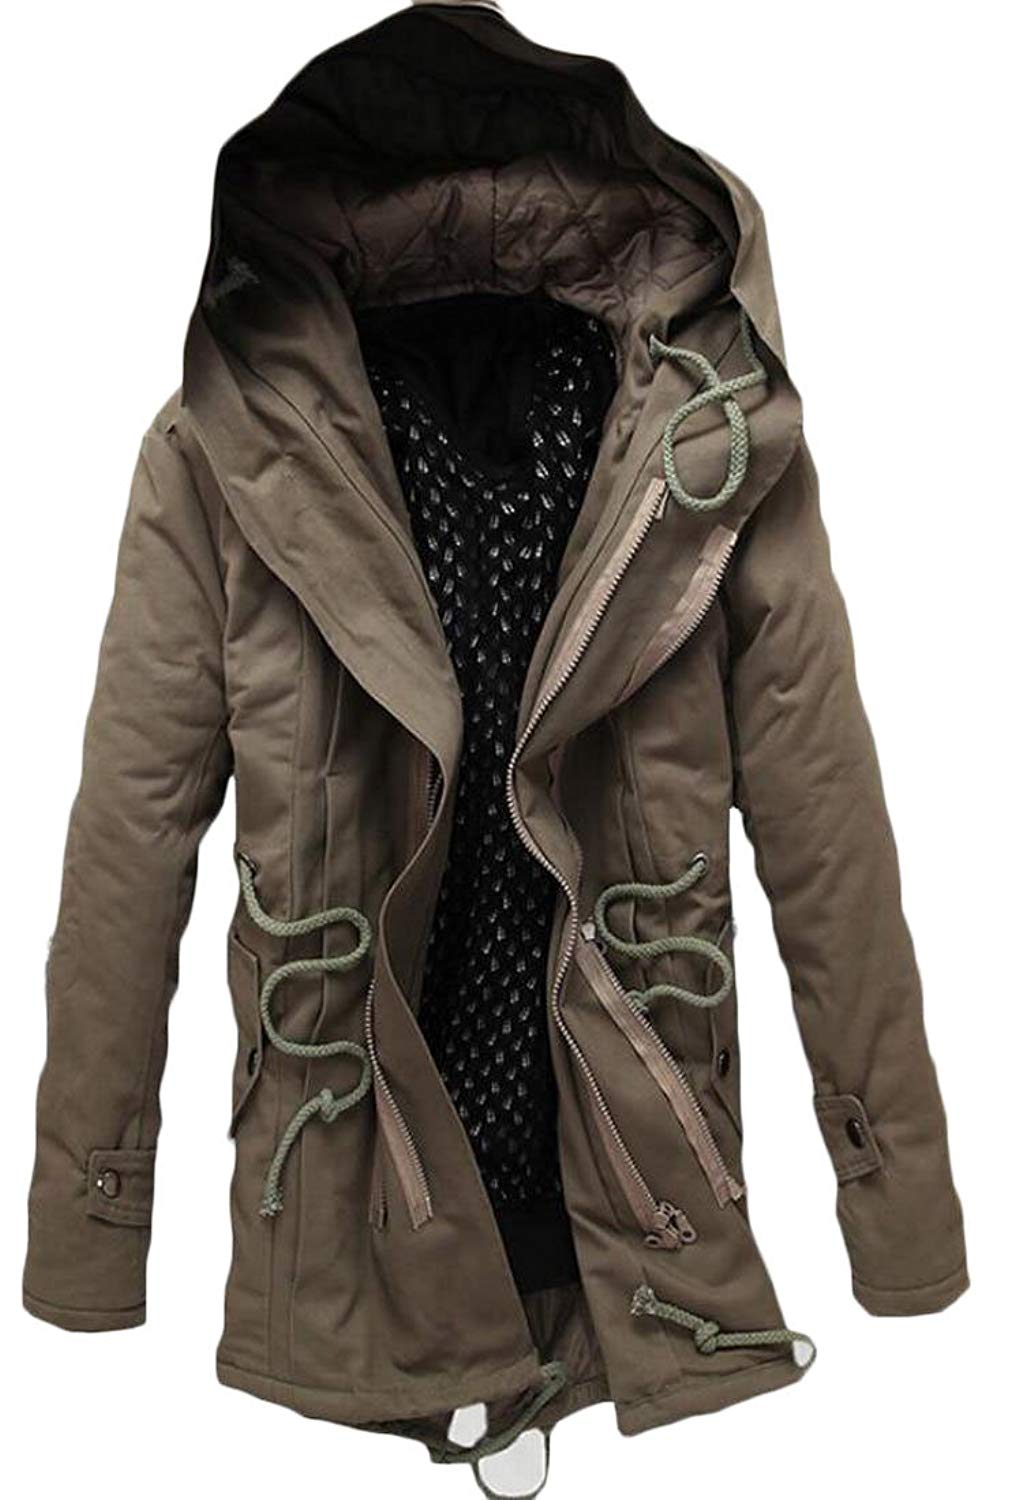 Sayhi Mens Classical Outwear Quilted Hoodie Warm Slim Jacket Parkas Coats